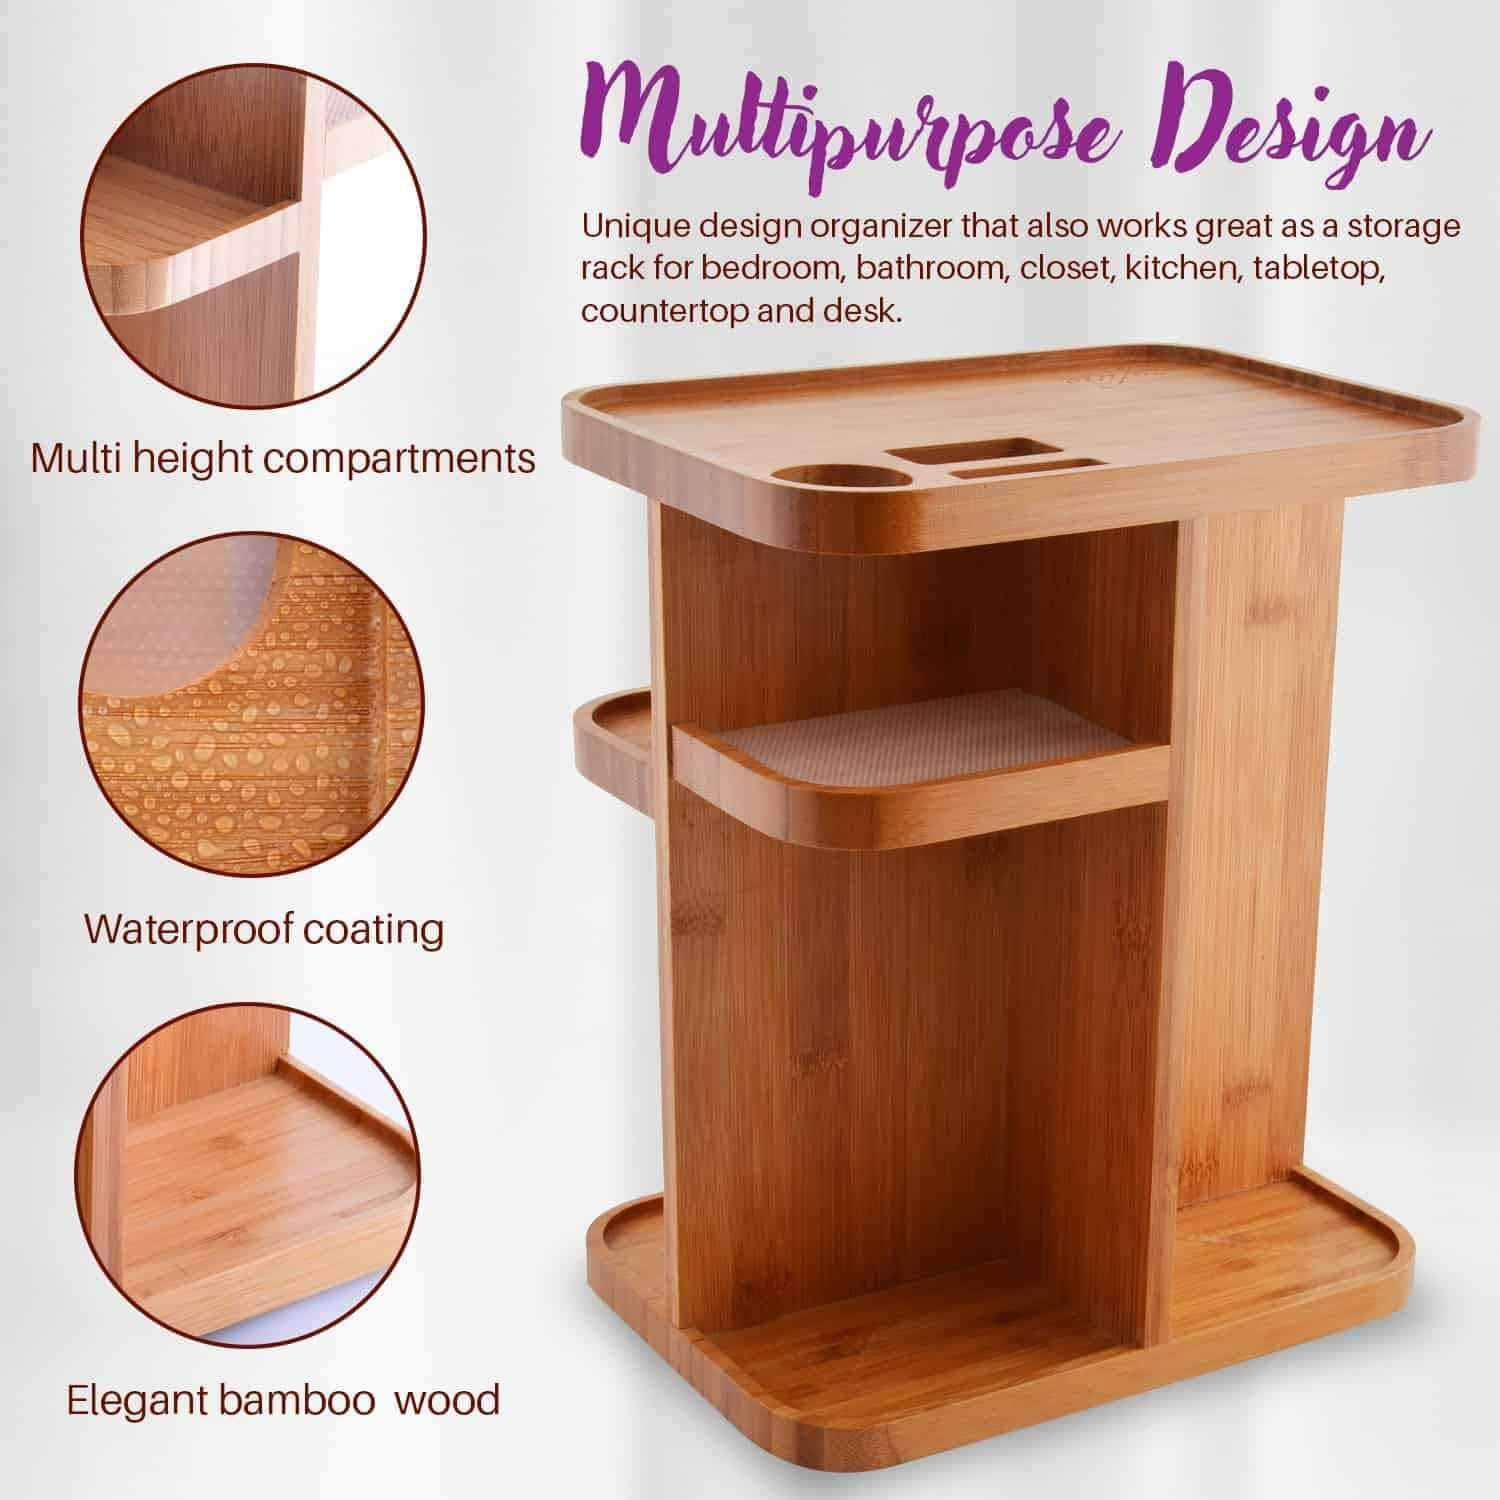 Home refine 360 bamboo cosmetic organizer multi function storage carousel for your vanity bathroom closet kitchen tabletop countertop and desk